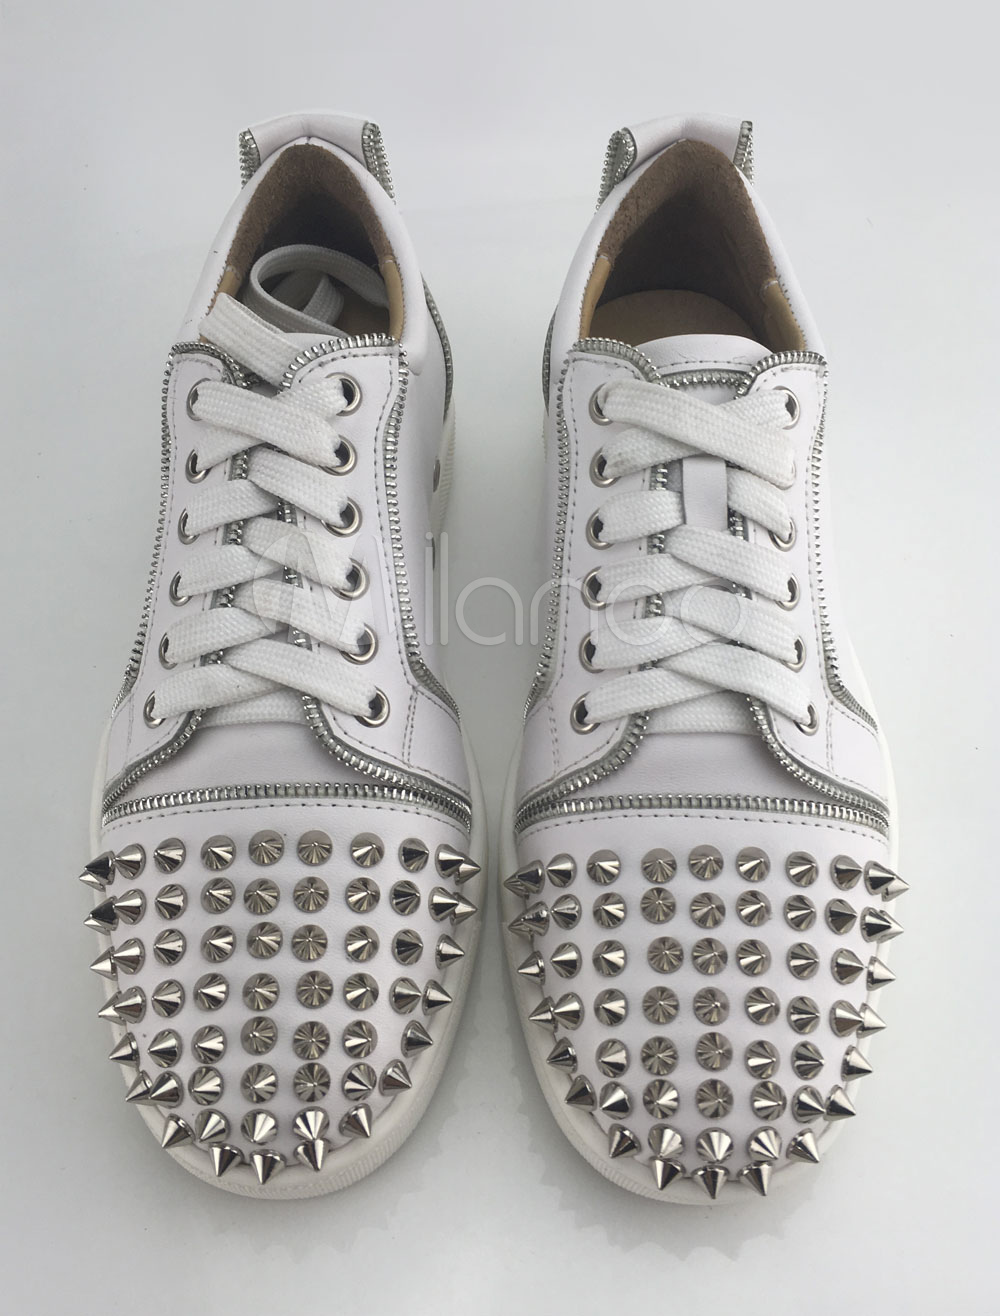 White Spike Shoes Leather Round Toe Lace Up Skate Shoes For Men